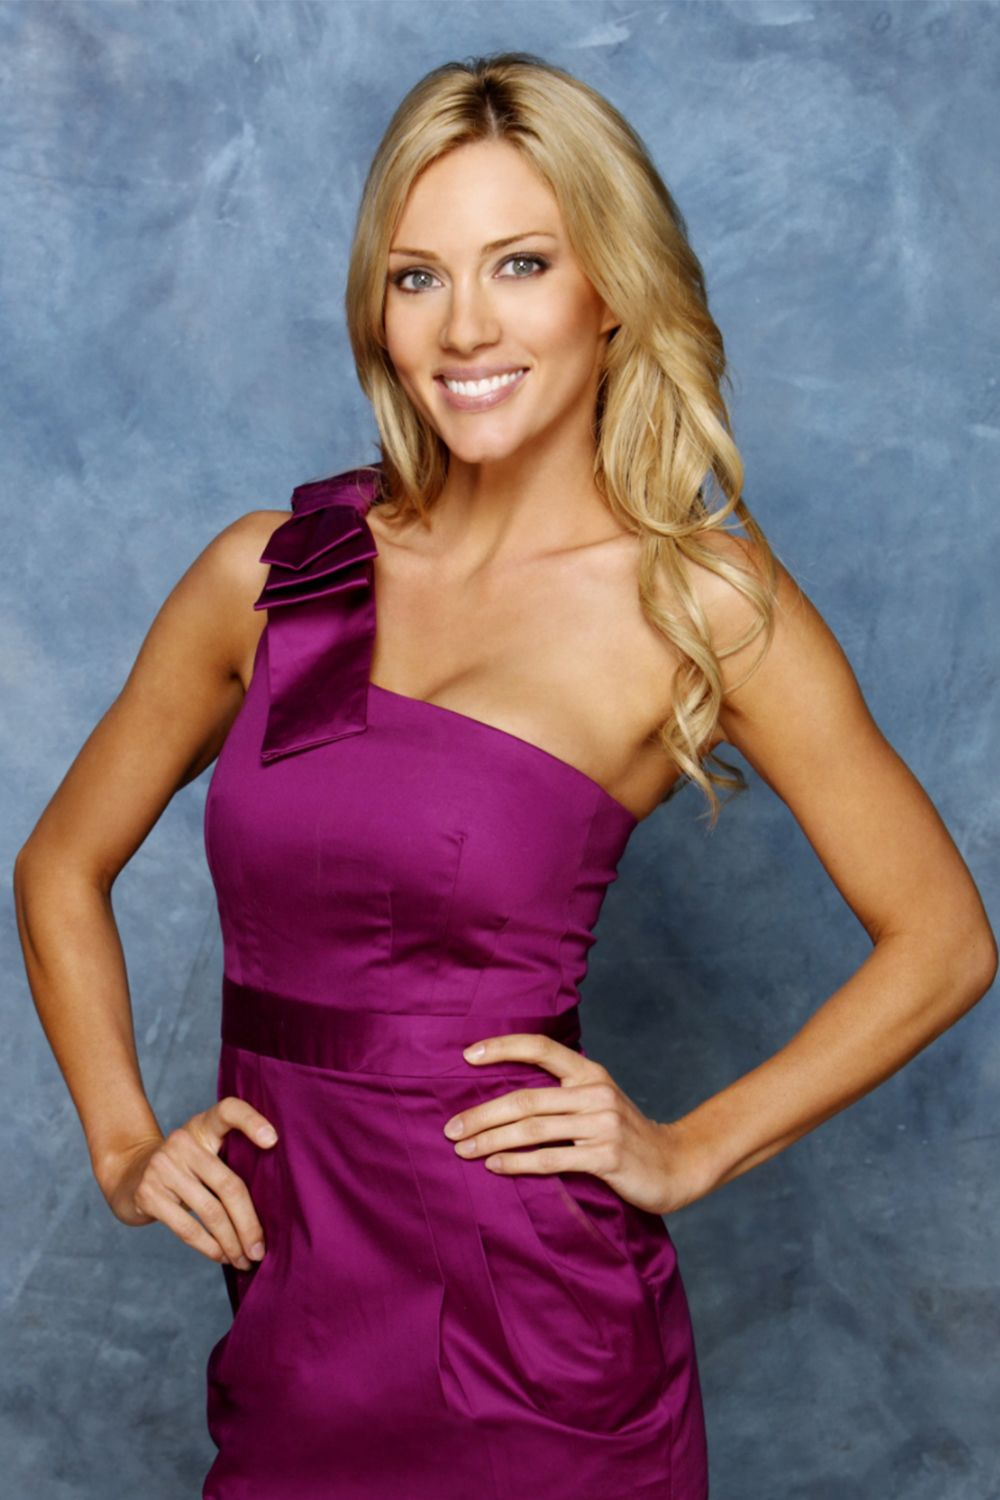 "Rozlyn Papa ('The Bachelor' Season 14) Rozyln Papa's exit from The Bachelor season 14 was highly uncomfortable to watch. While competing for the love of bachelor Jake Pavelka, Rozlyn was accused of engaging in an ""inappropriate relationship"" with one of the show's producers."